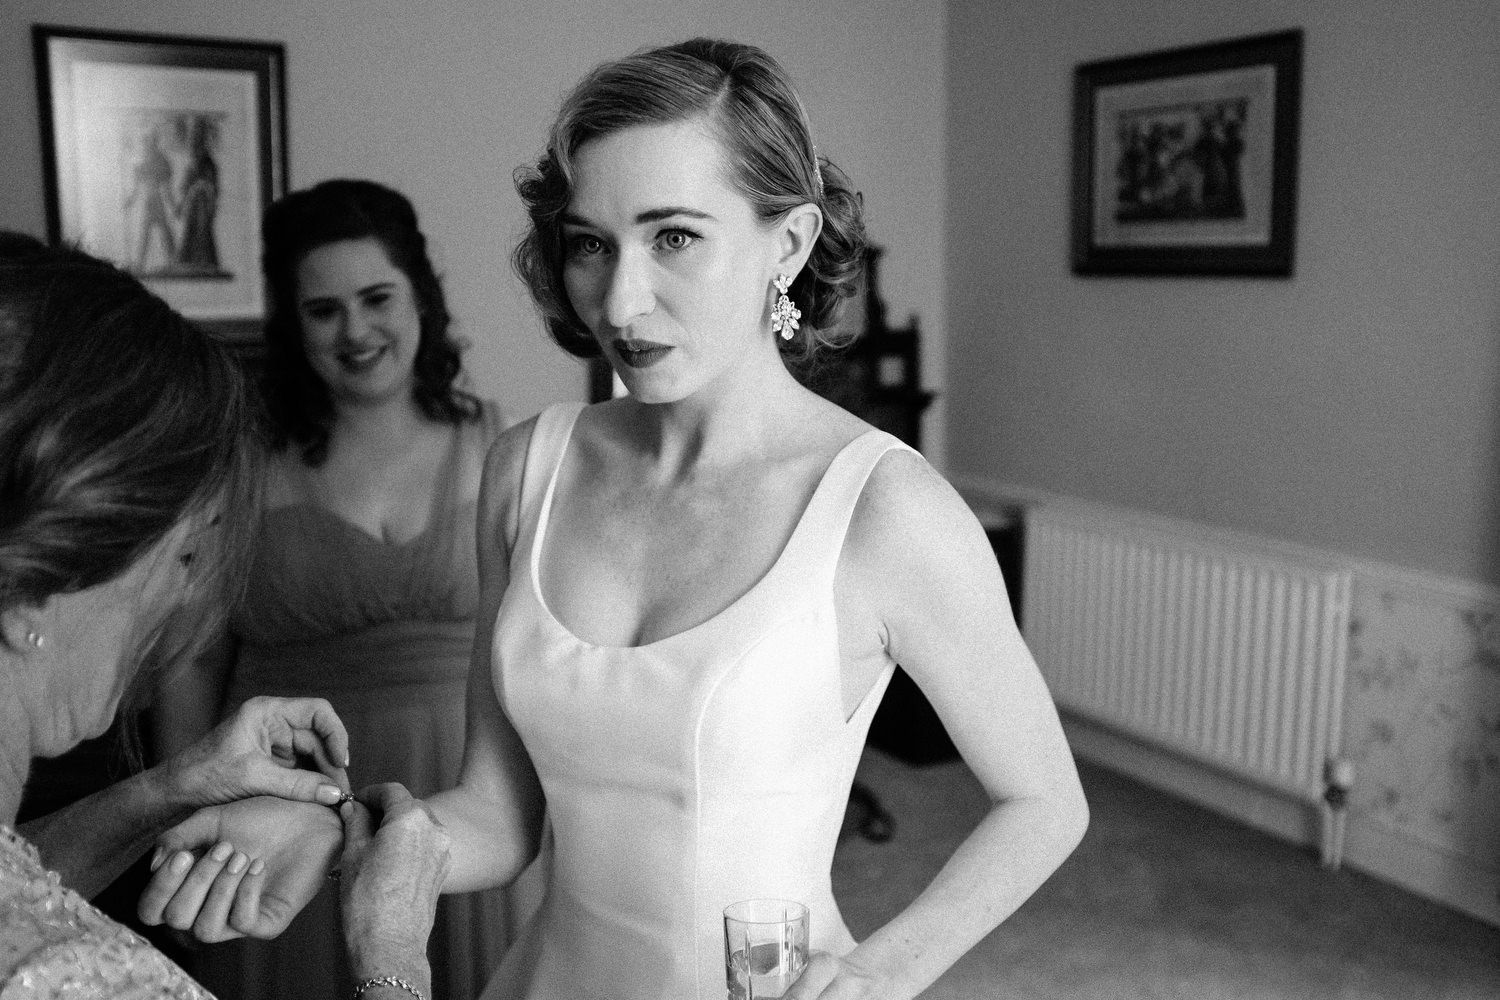 000000000000000000000083_bride_style_preparation_vintage_Hair_dress_photography_david_mcclelland_ireland_makeup_castle_hollywood_kinnity_wedding_photographer_fujifilm